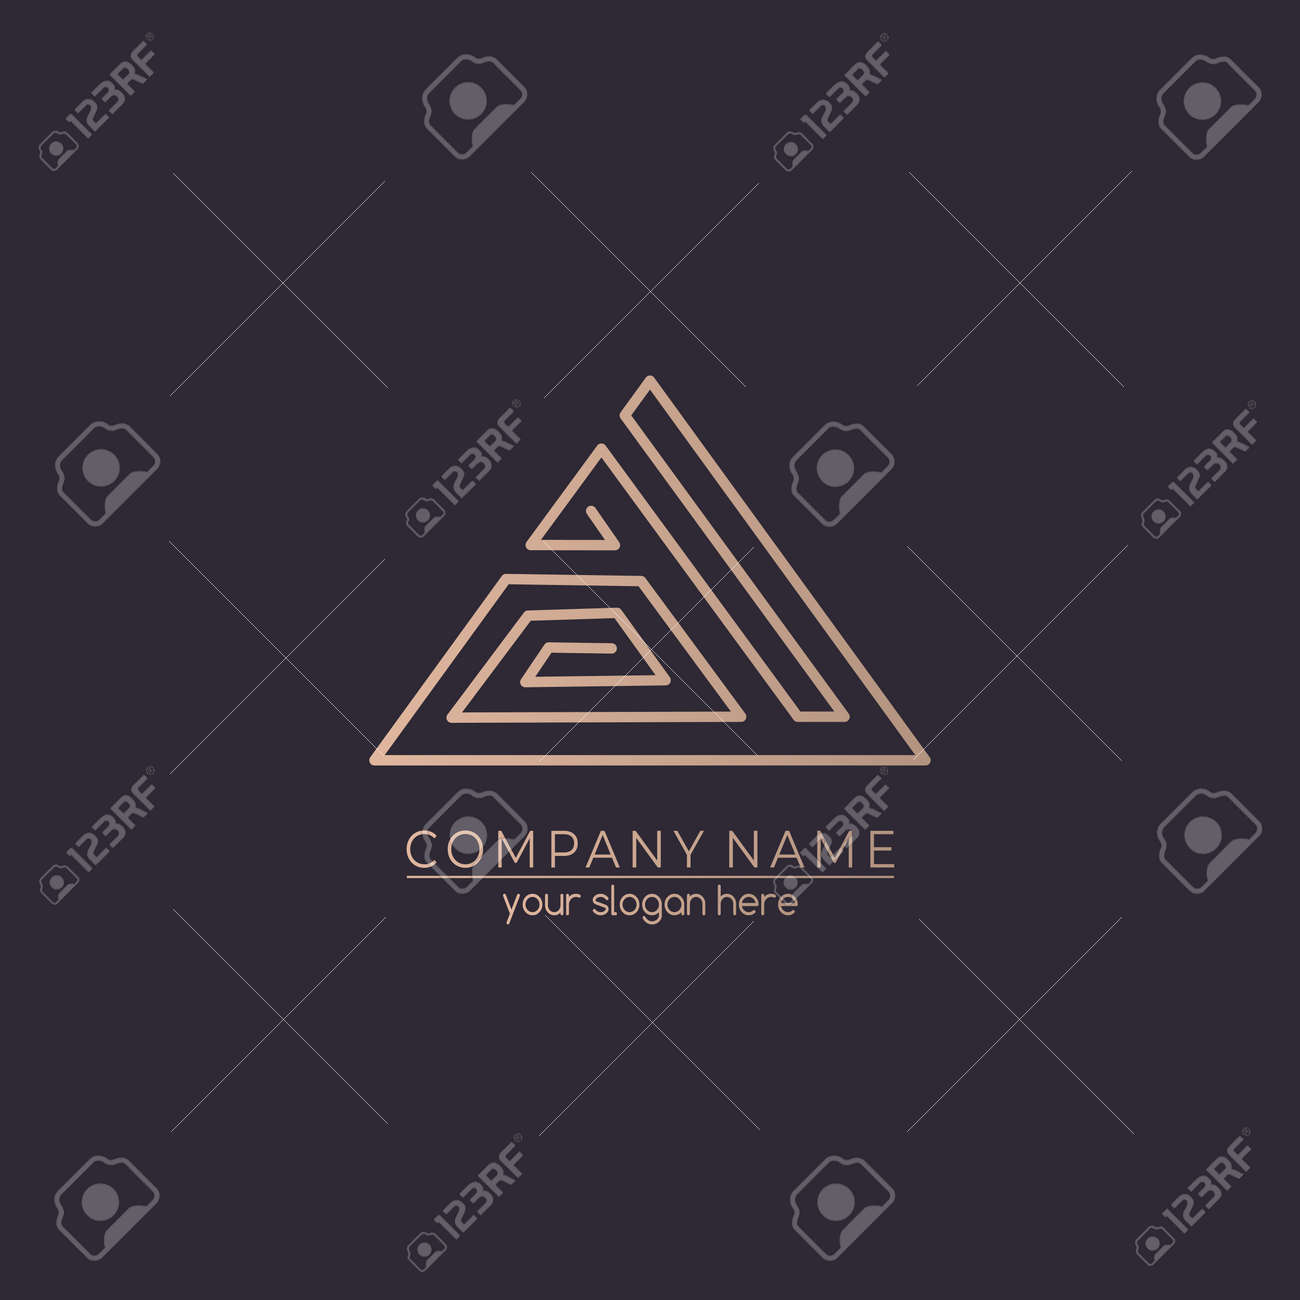 Letter logo or monogram. blank for business card. For your business. Vector sign. Luxurious linear creative monogram. - 141056879